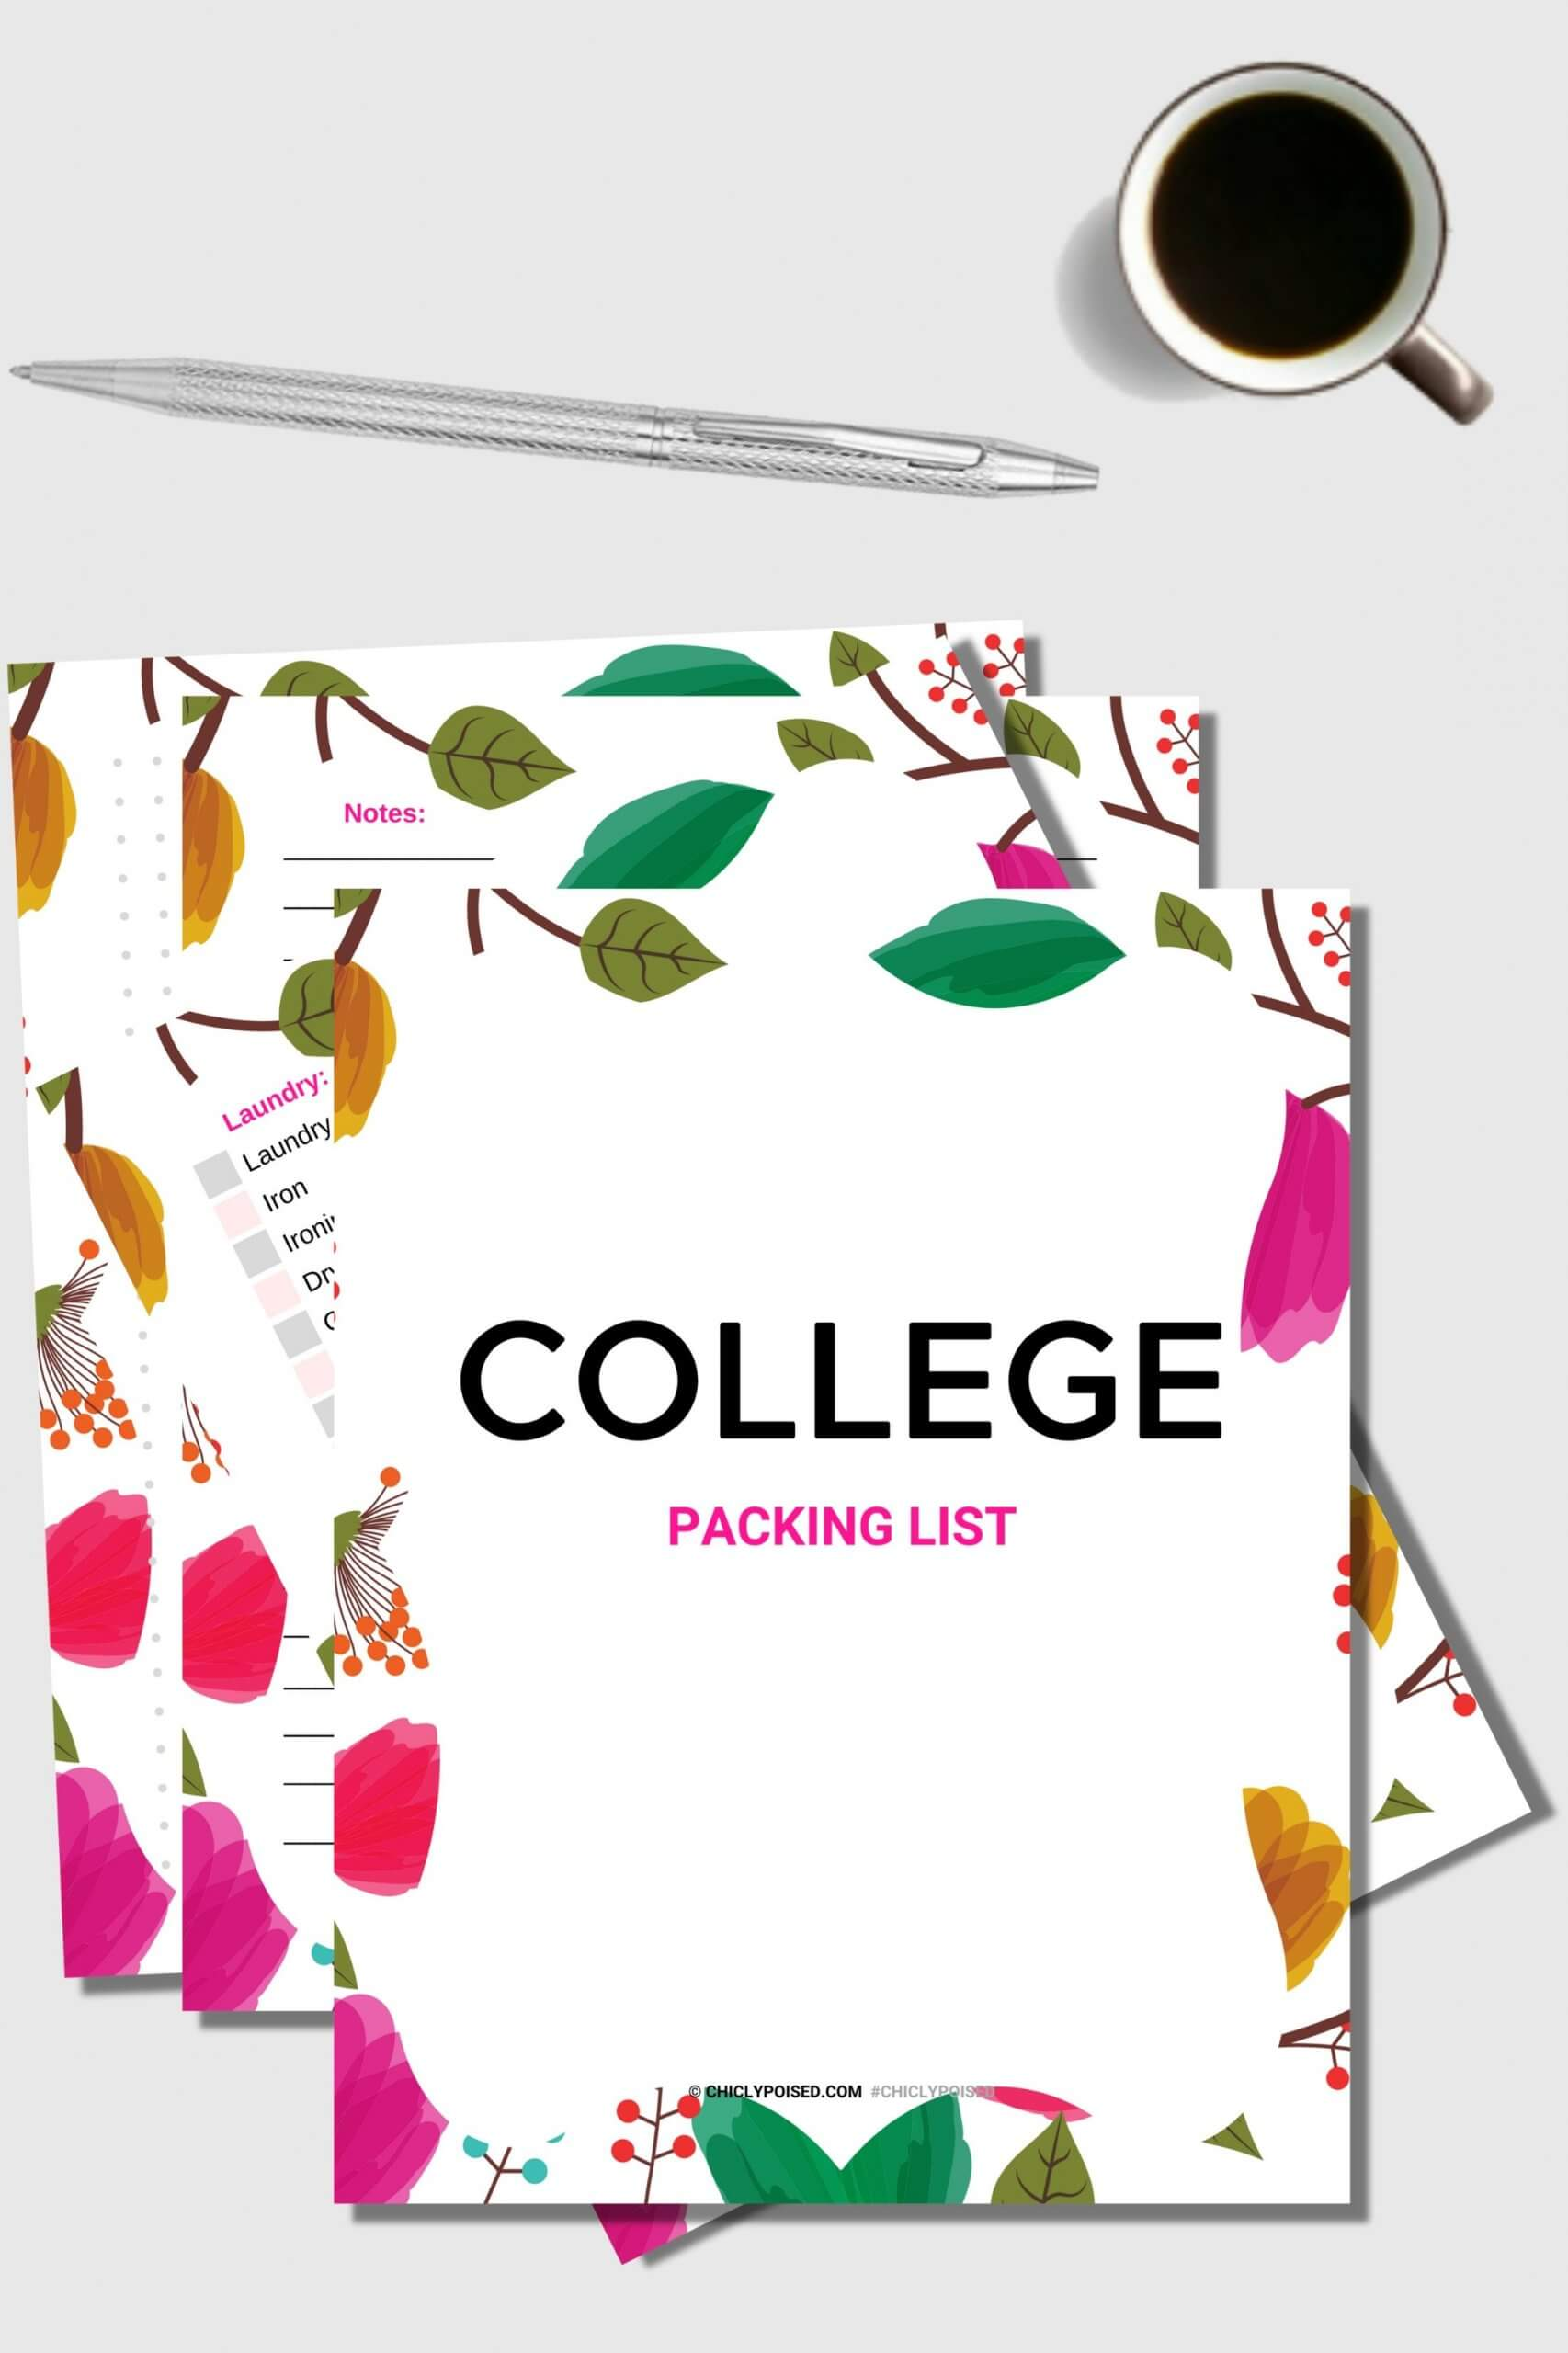 College Packing List Printable 1 of 2